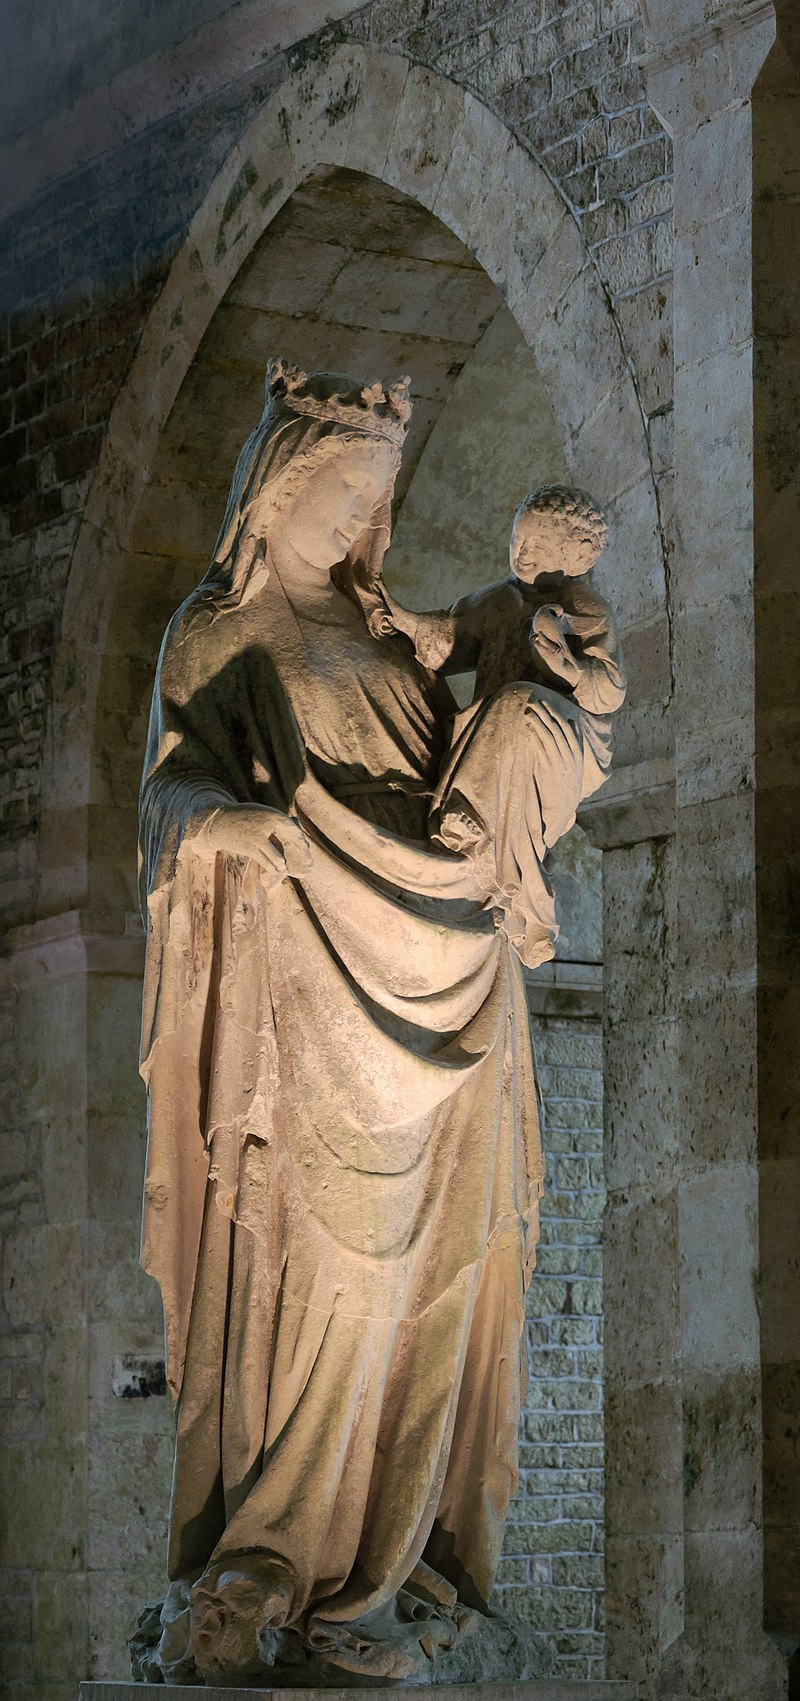 Statue of the Madonna and Child, Abbey of Fontenay, Burgundy. dans immagini sacre 800px-Abbaye_Fontenay_Vierge